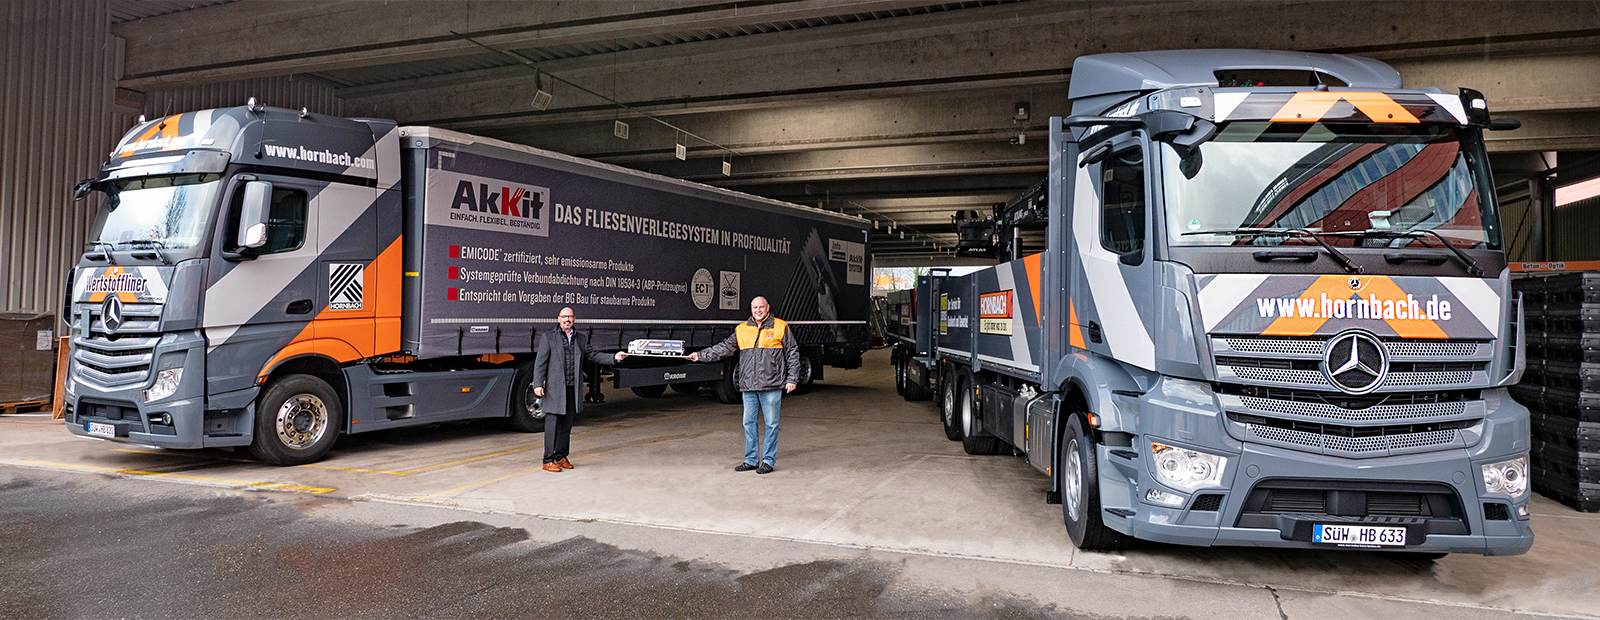 Hornbach receives further transport equipment from Krone